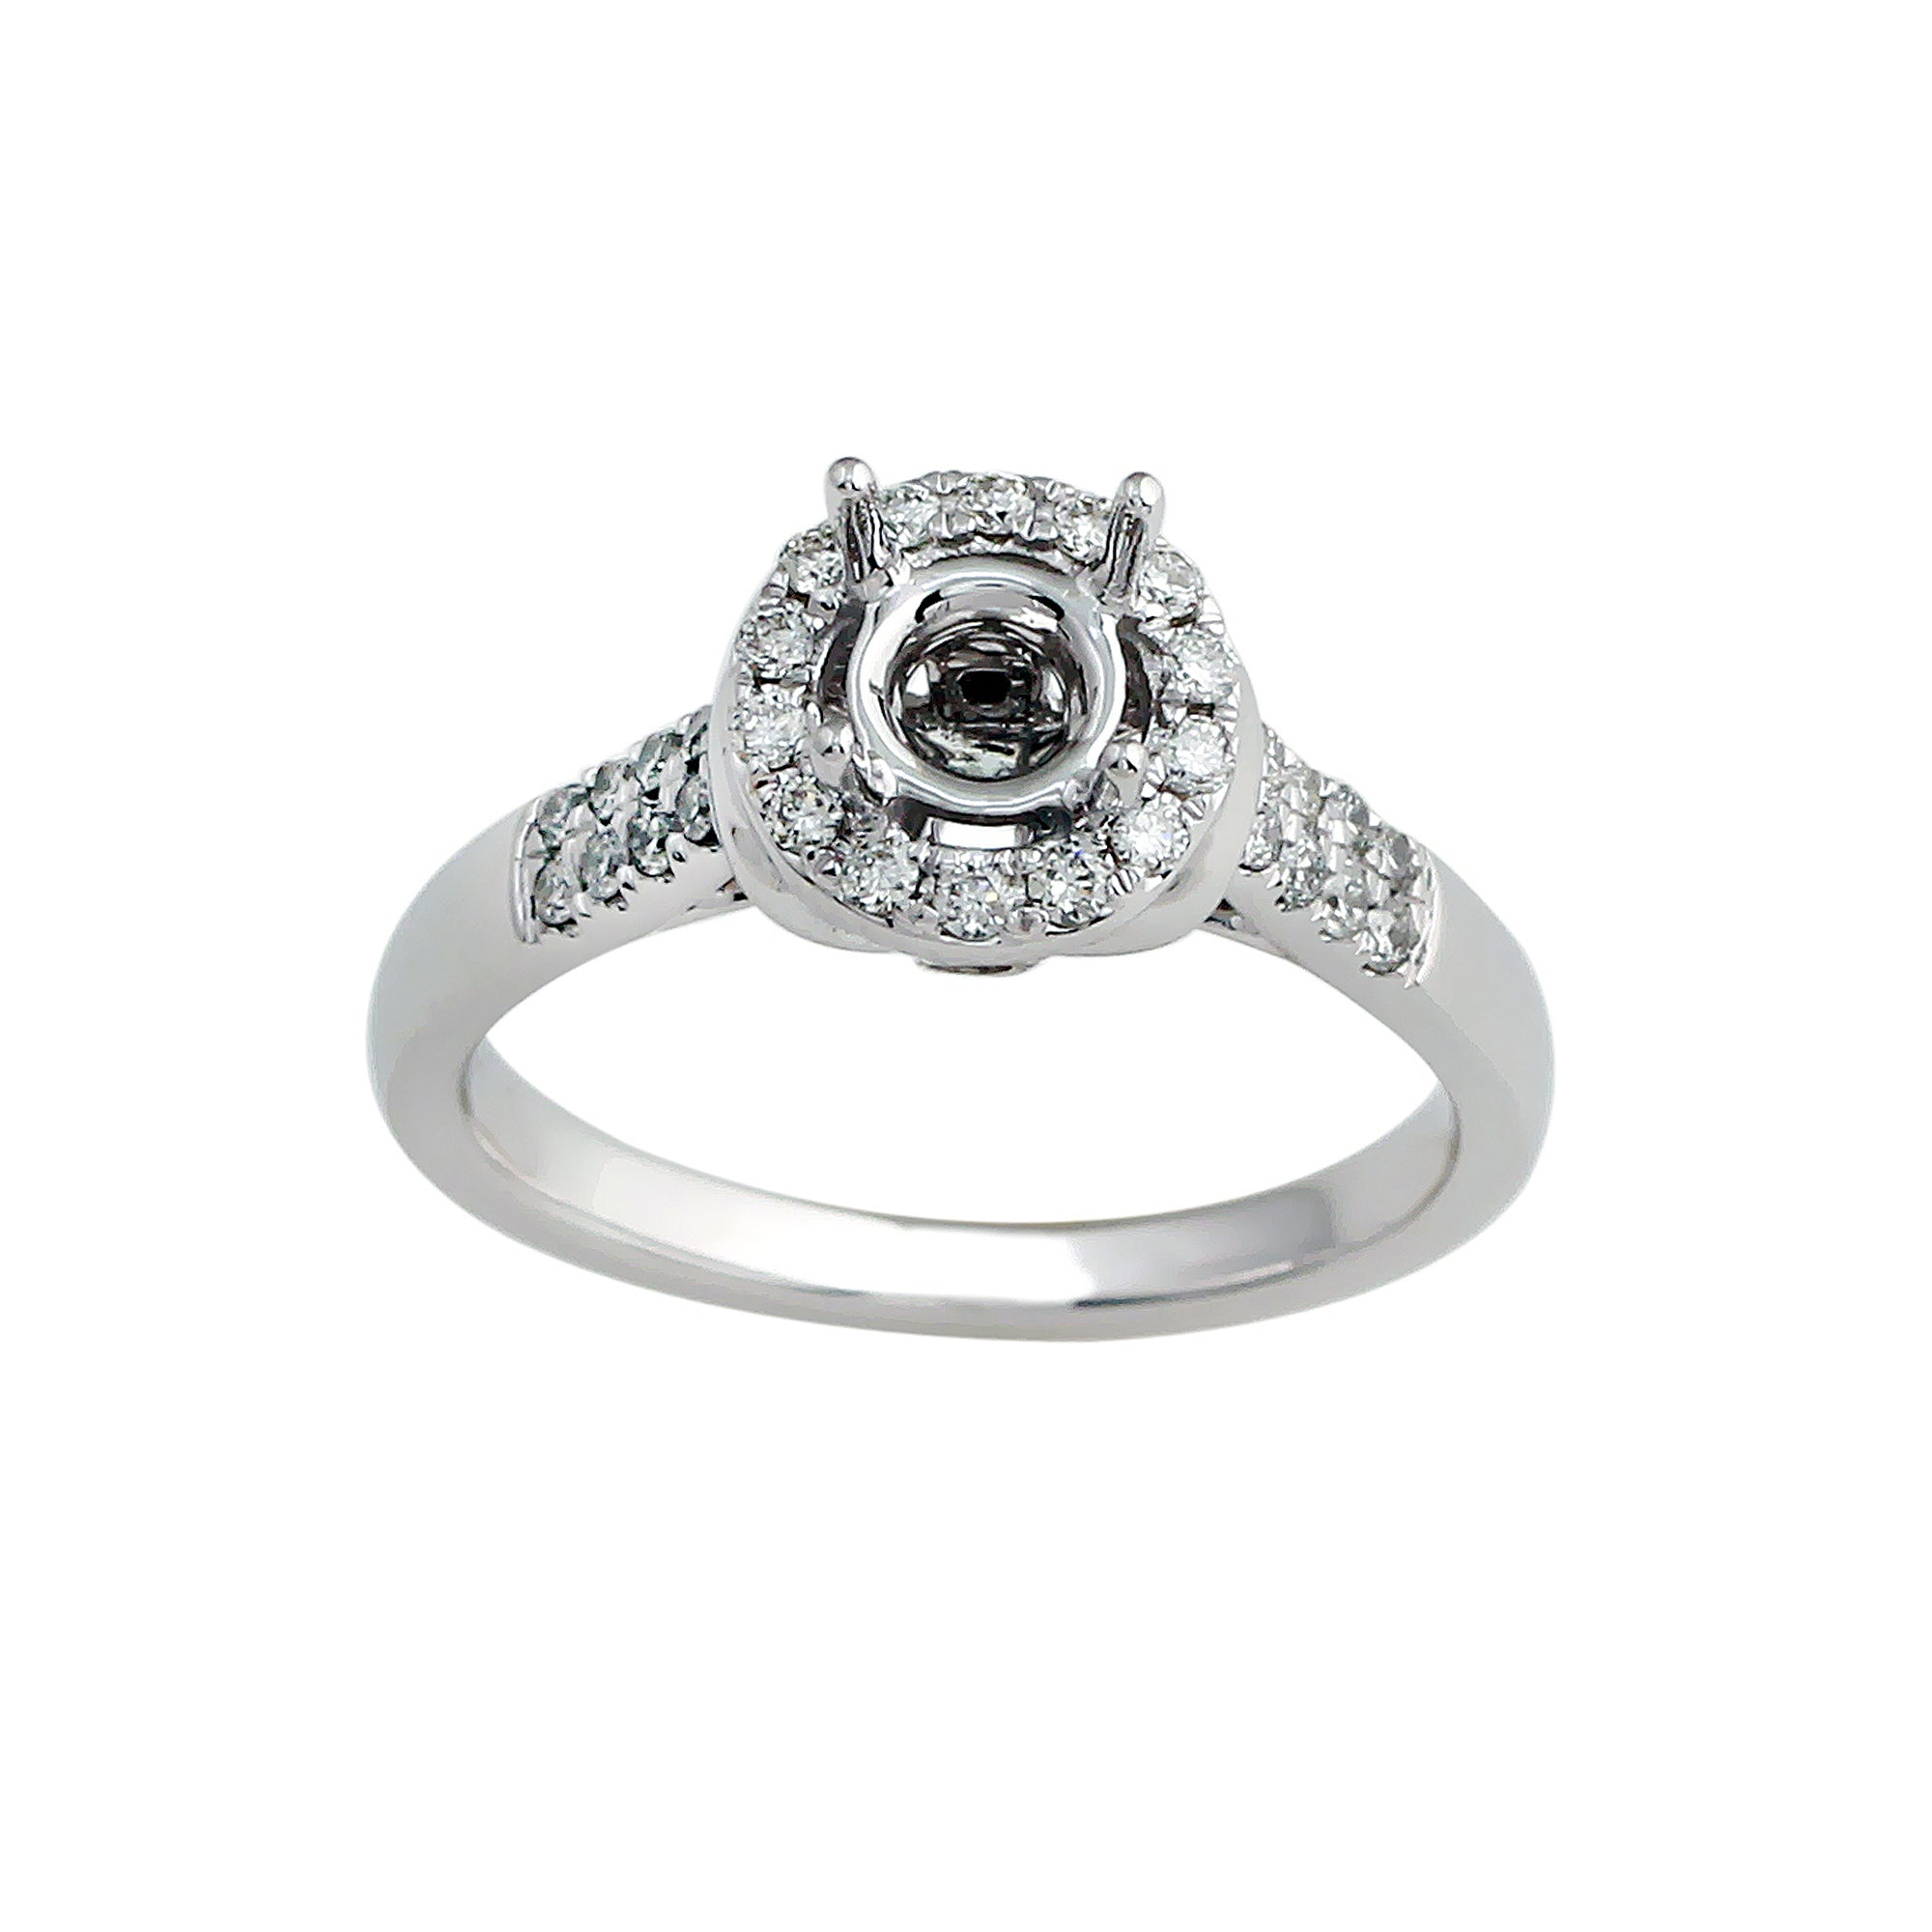 14K White Gold 2.19CTTW Lab-Grown Diamond Semi-Mount Ring